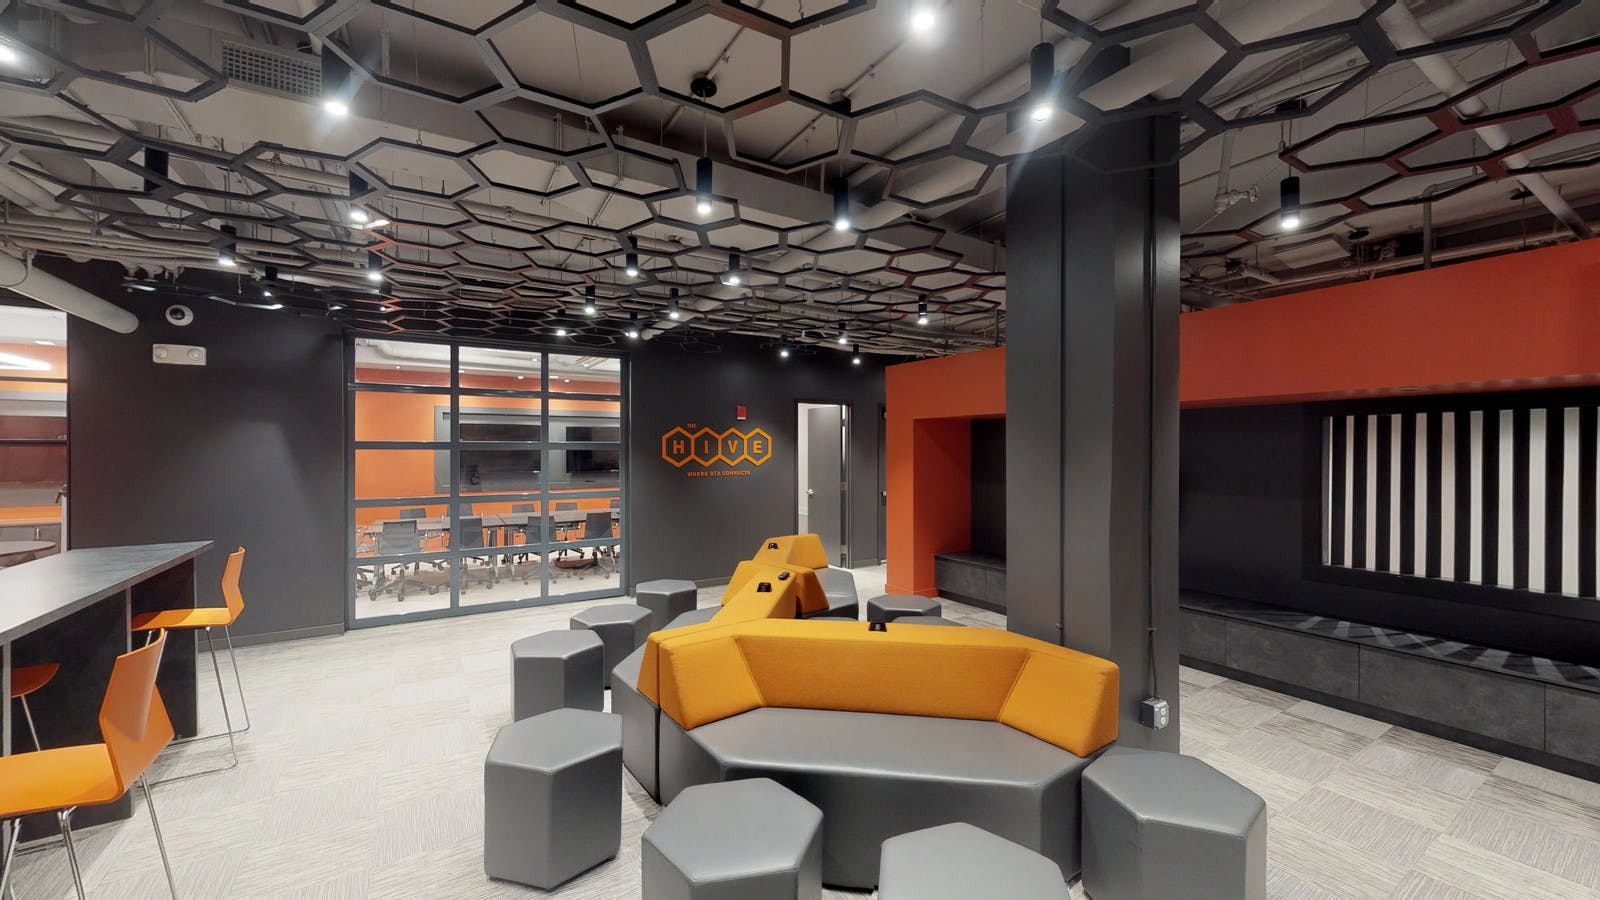 The Hive Office Space modern open concept office with hexagonal geometry themes